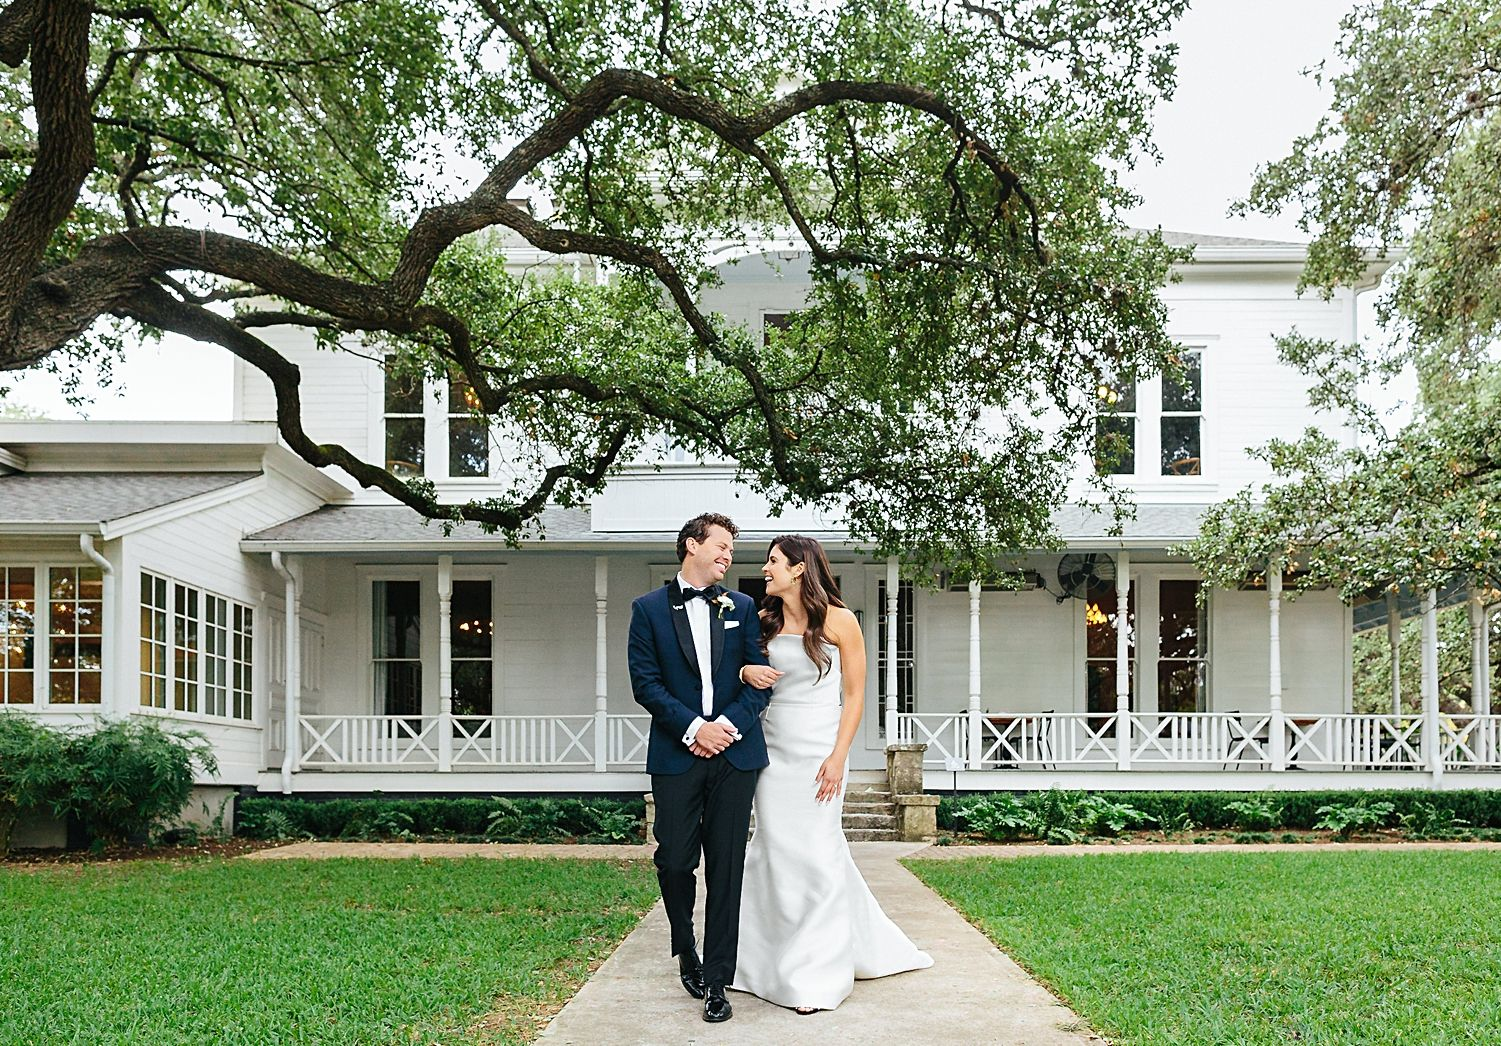 Top 8 Best Austin Wedding Venues in 2020 (With images